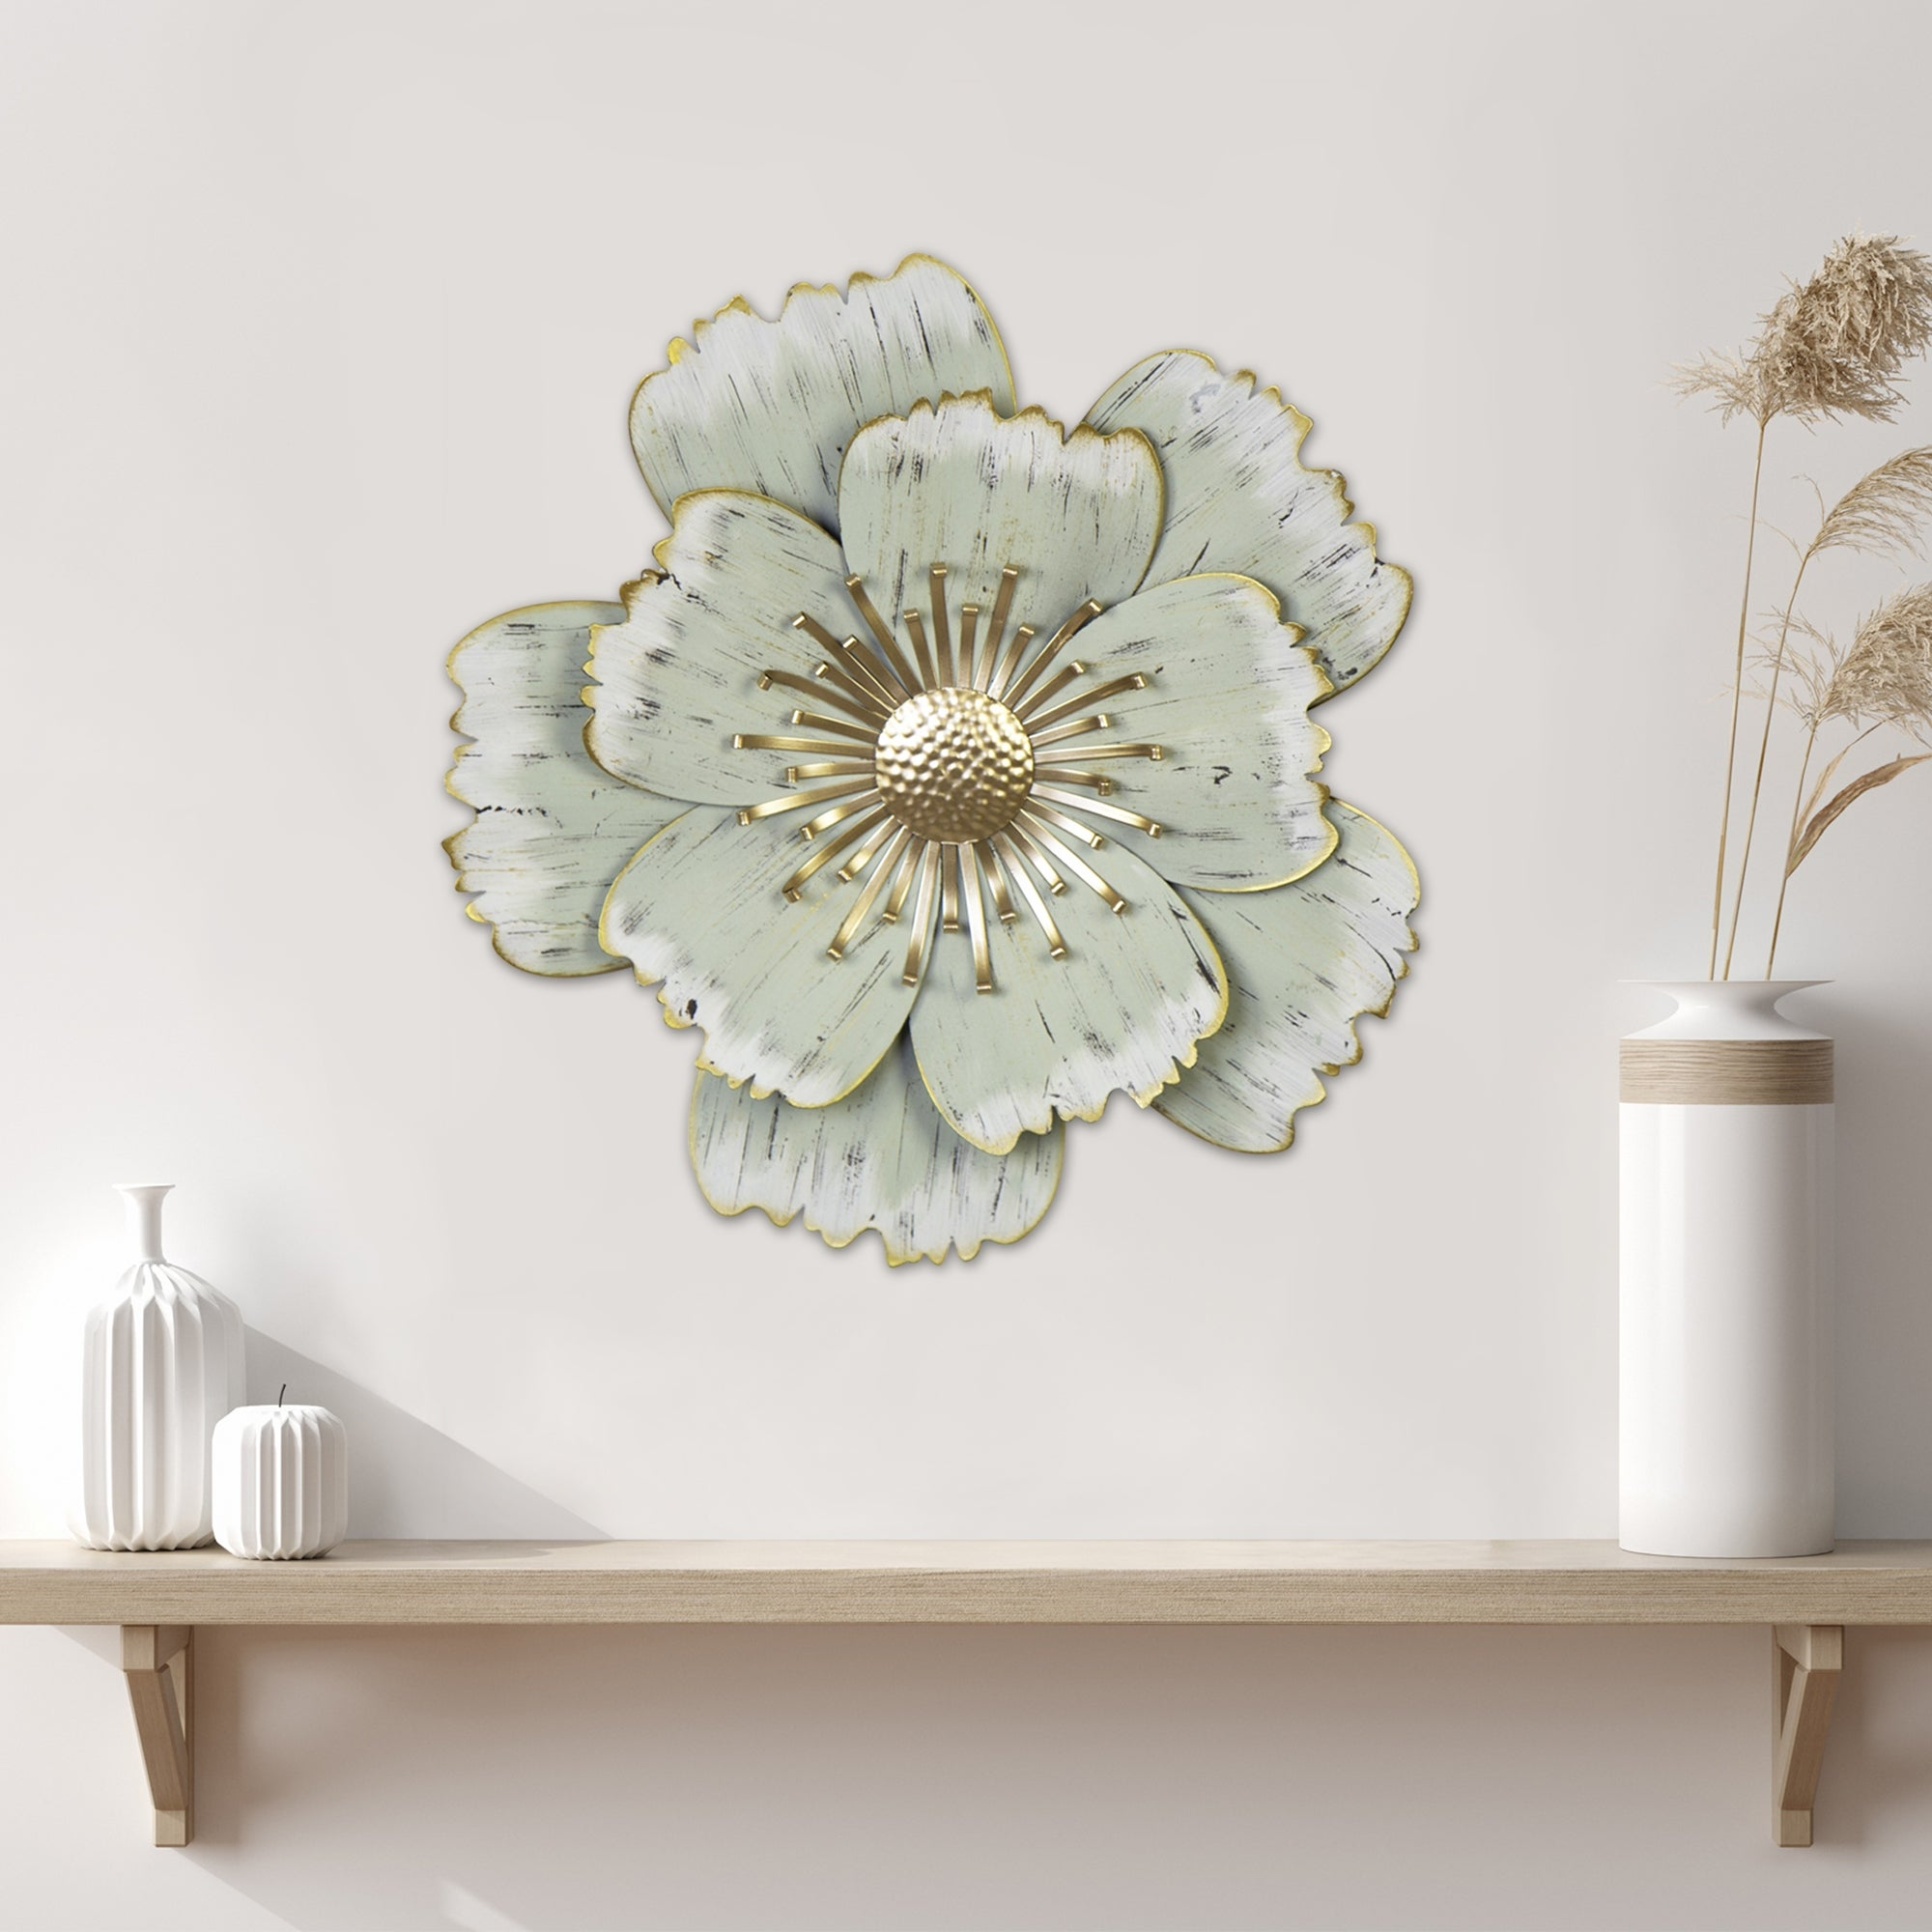 Stratton Home Decor Layered Green Metal Flower Wall Decor 16 54 X 2 76 X 16 00 Overstock 31945524